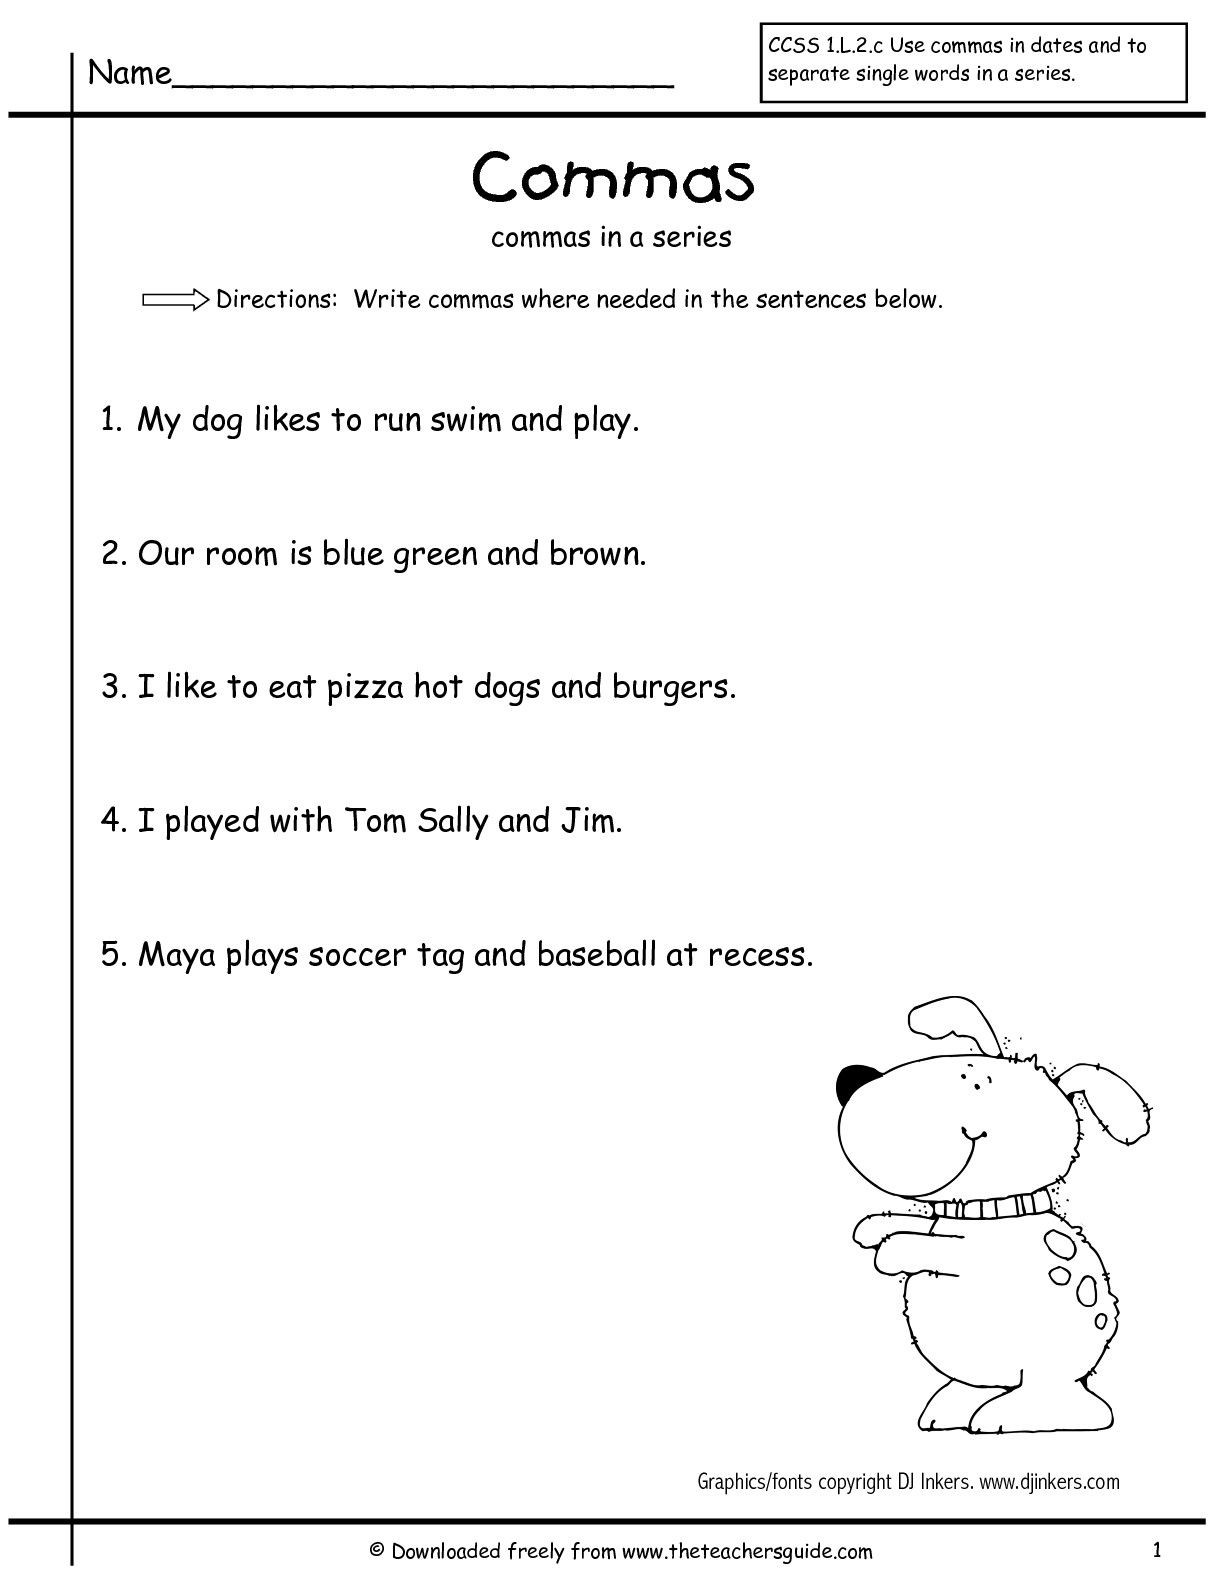 Comma Worksheets 2nd Grade Masinseriesfirstgrade2 001 001 1224—1584